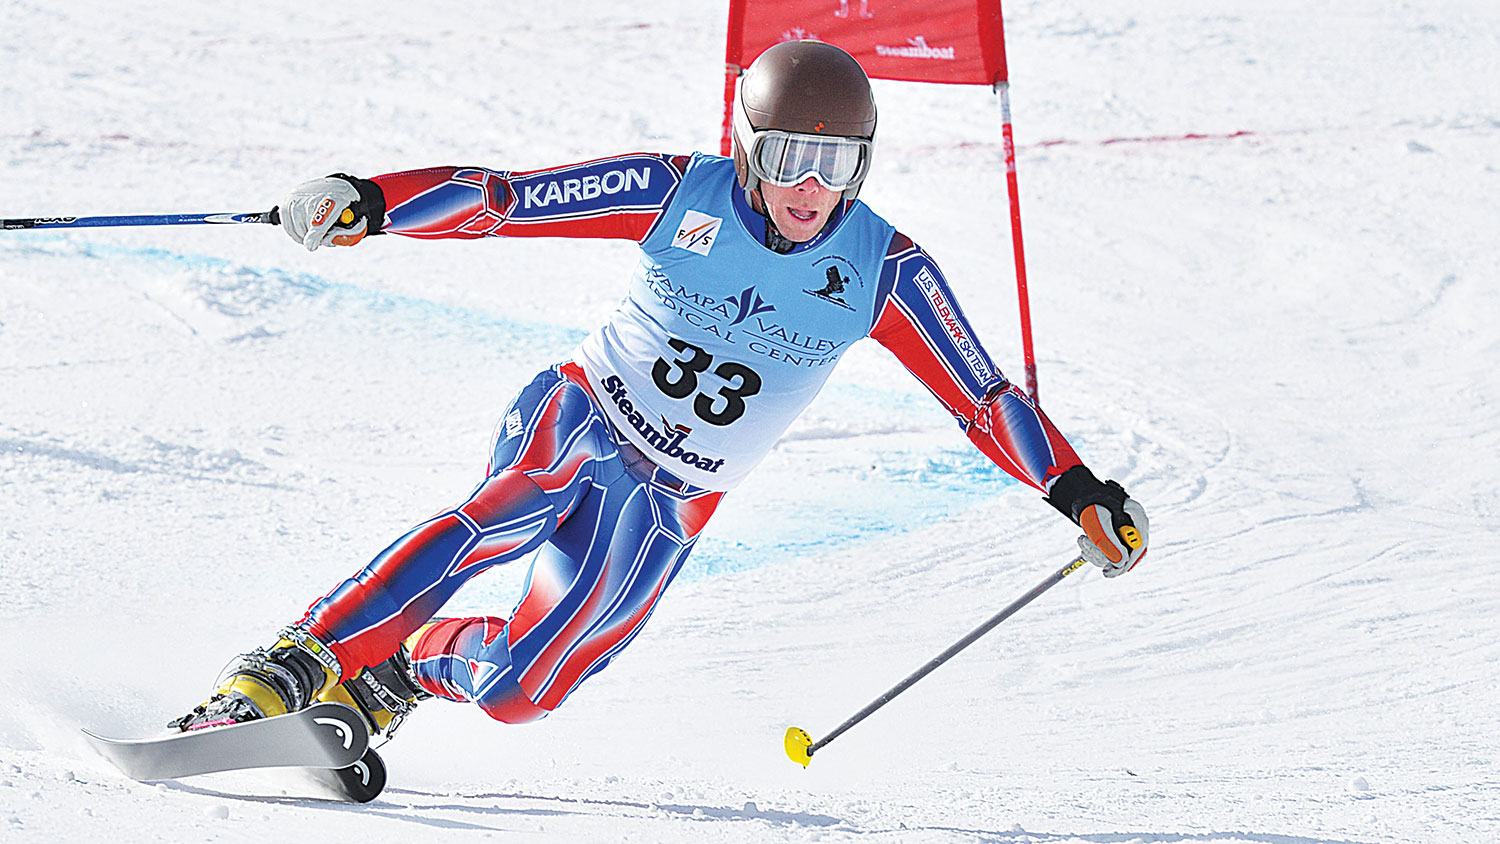 U.S. Telemark Ski Team Member Charlie Dresen drops the knee for the win. PHOTO: Teleski World Championships